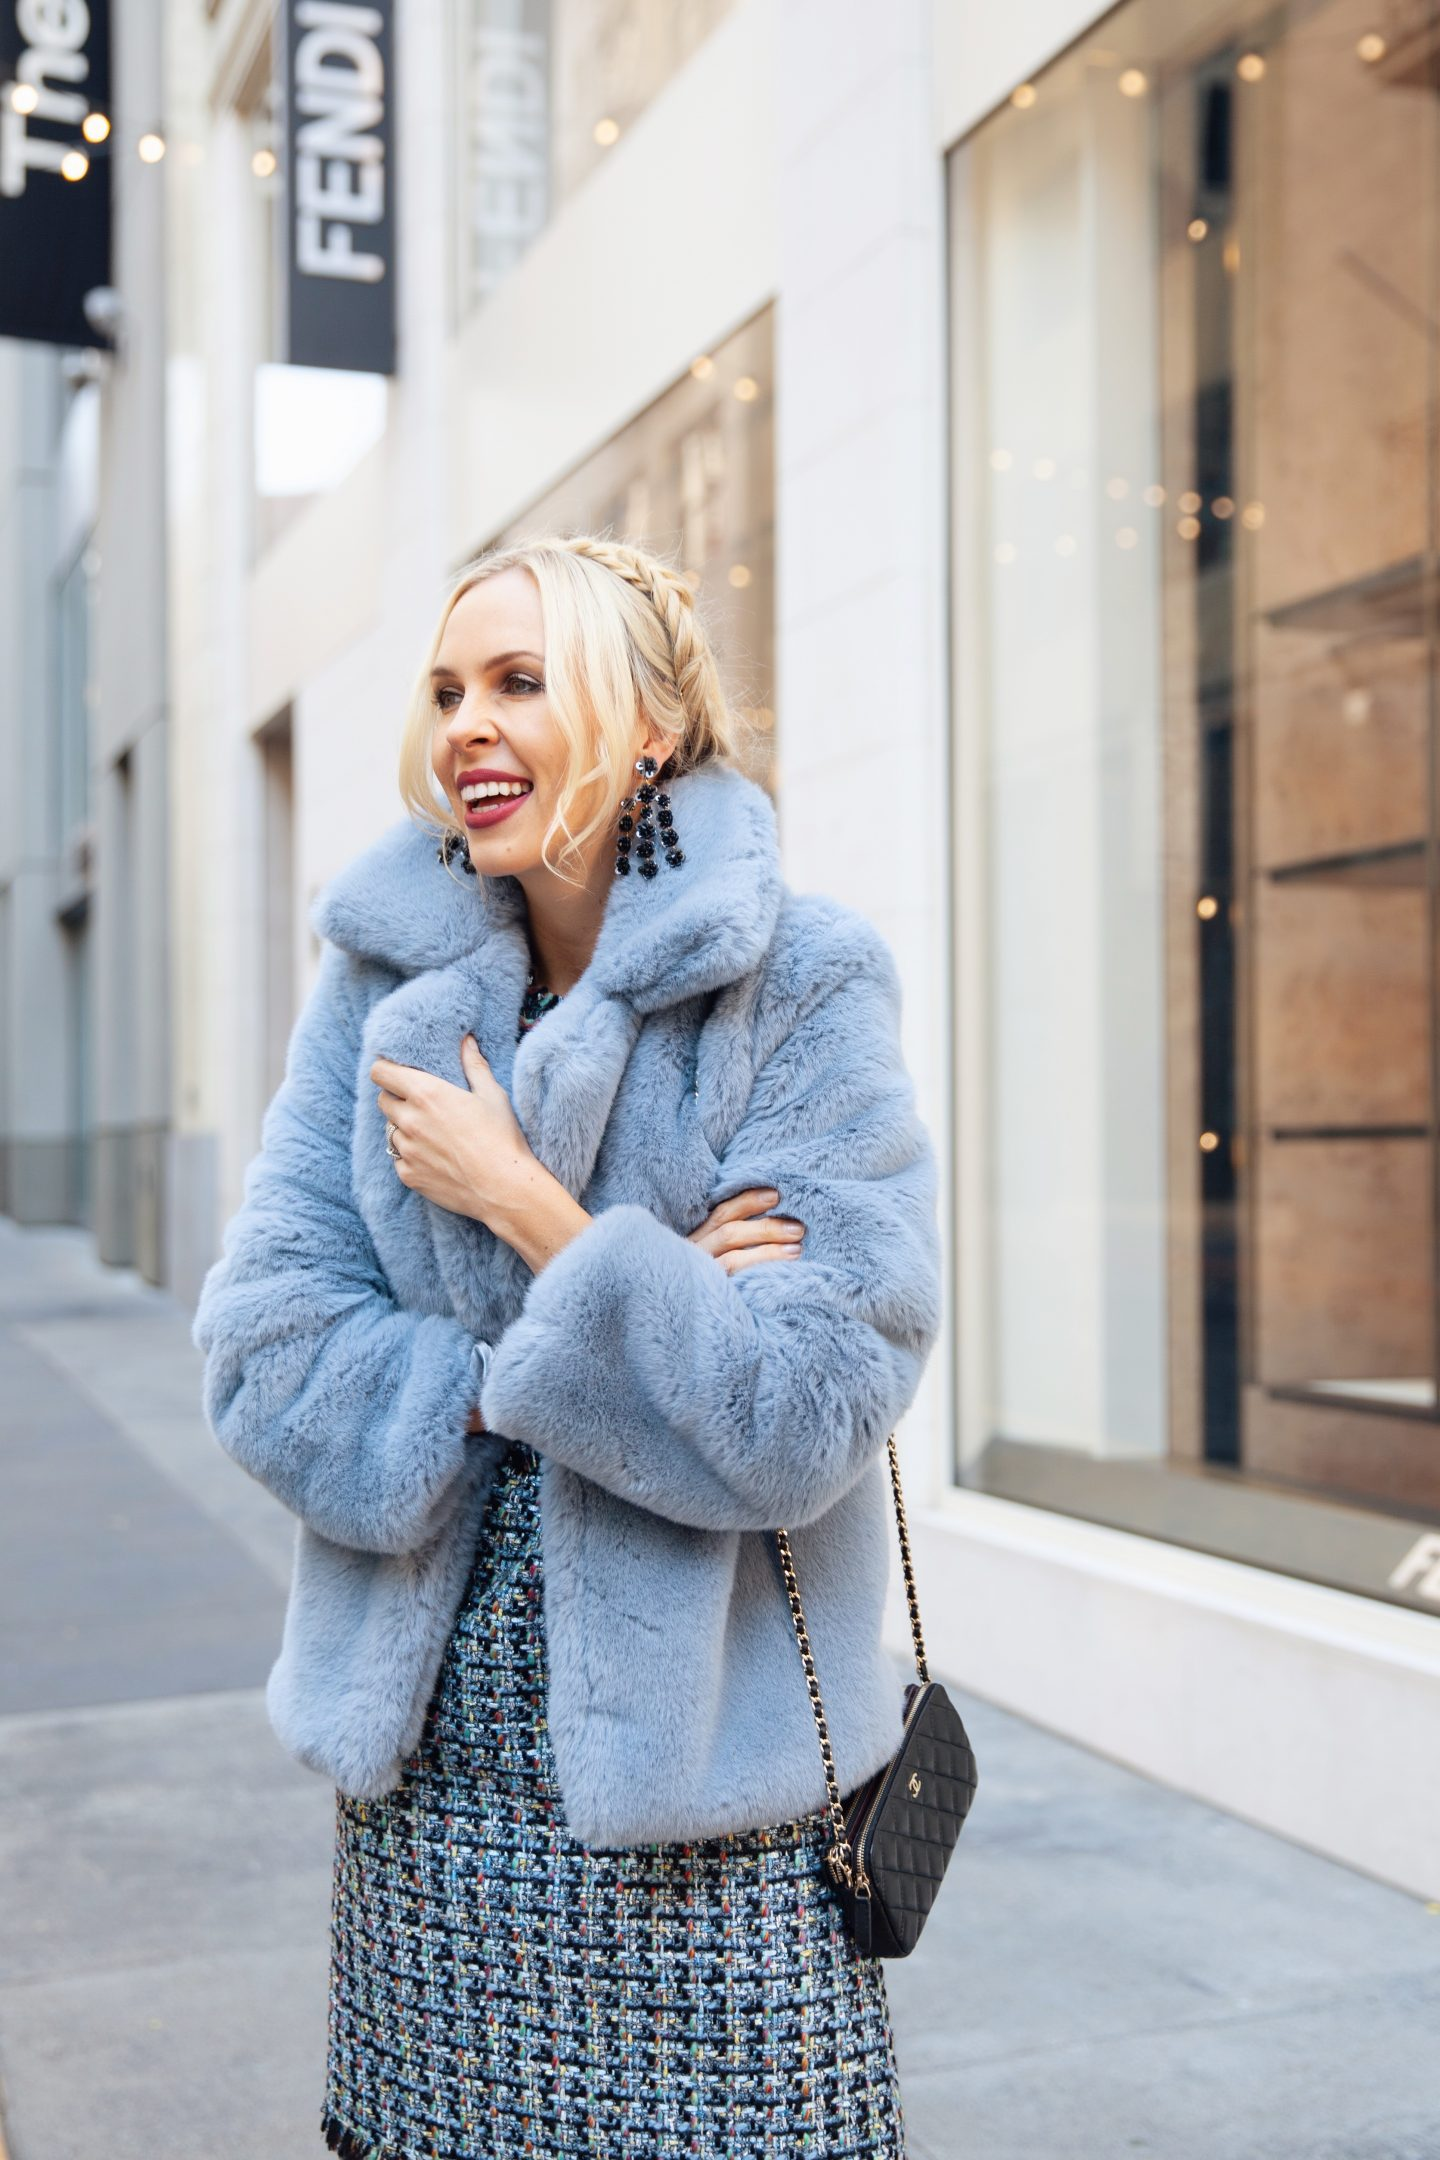 Best faux fur jackets featured by top San Francisco fashion blog, Lombard and Fifth: image of a woman wearing a Rent the runway faux fur jacket